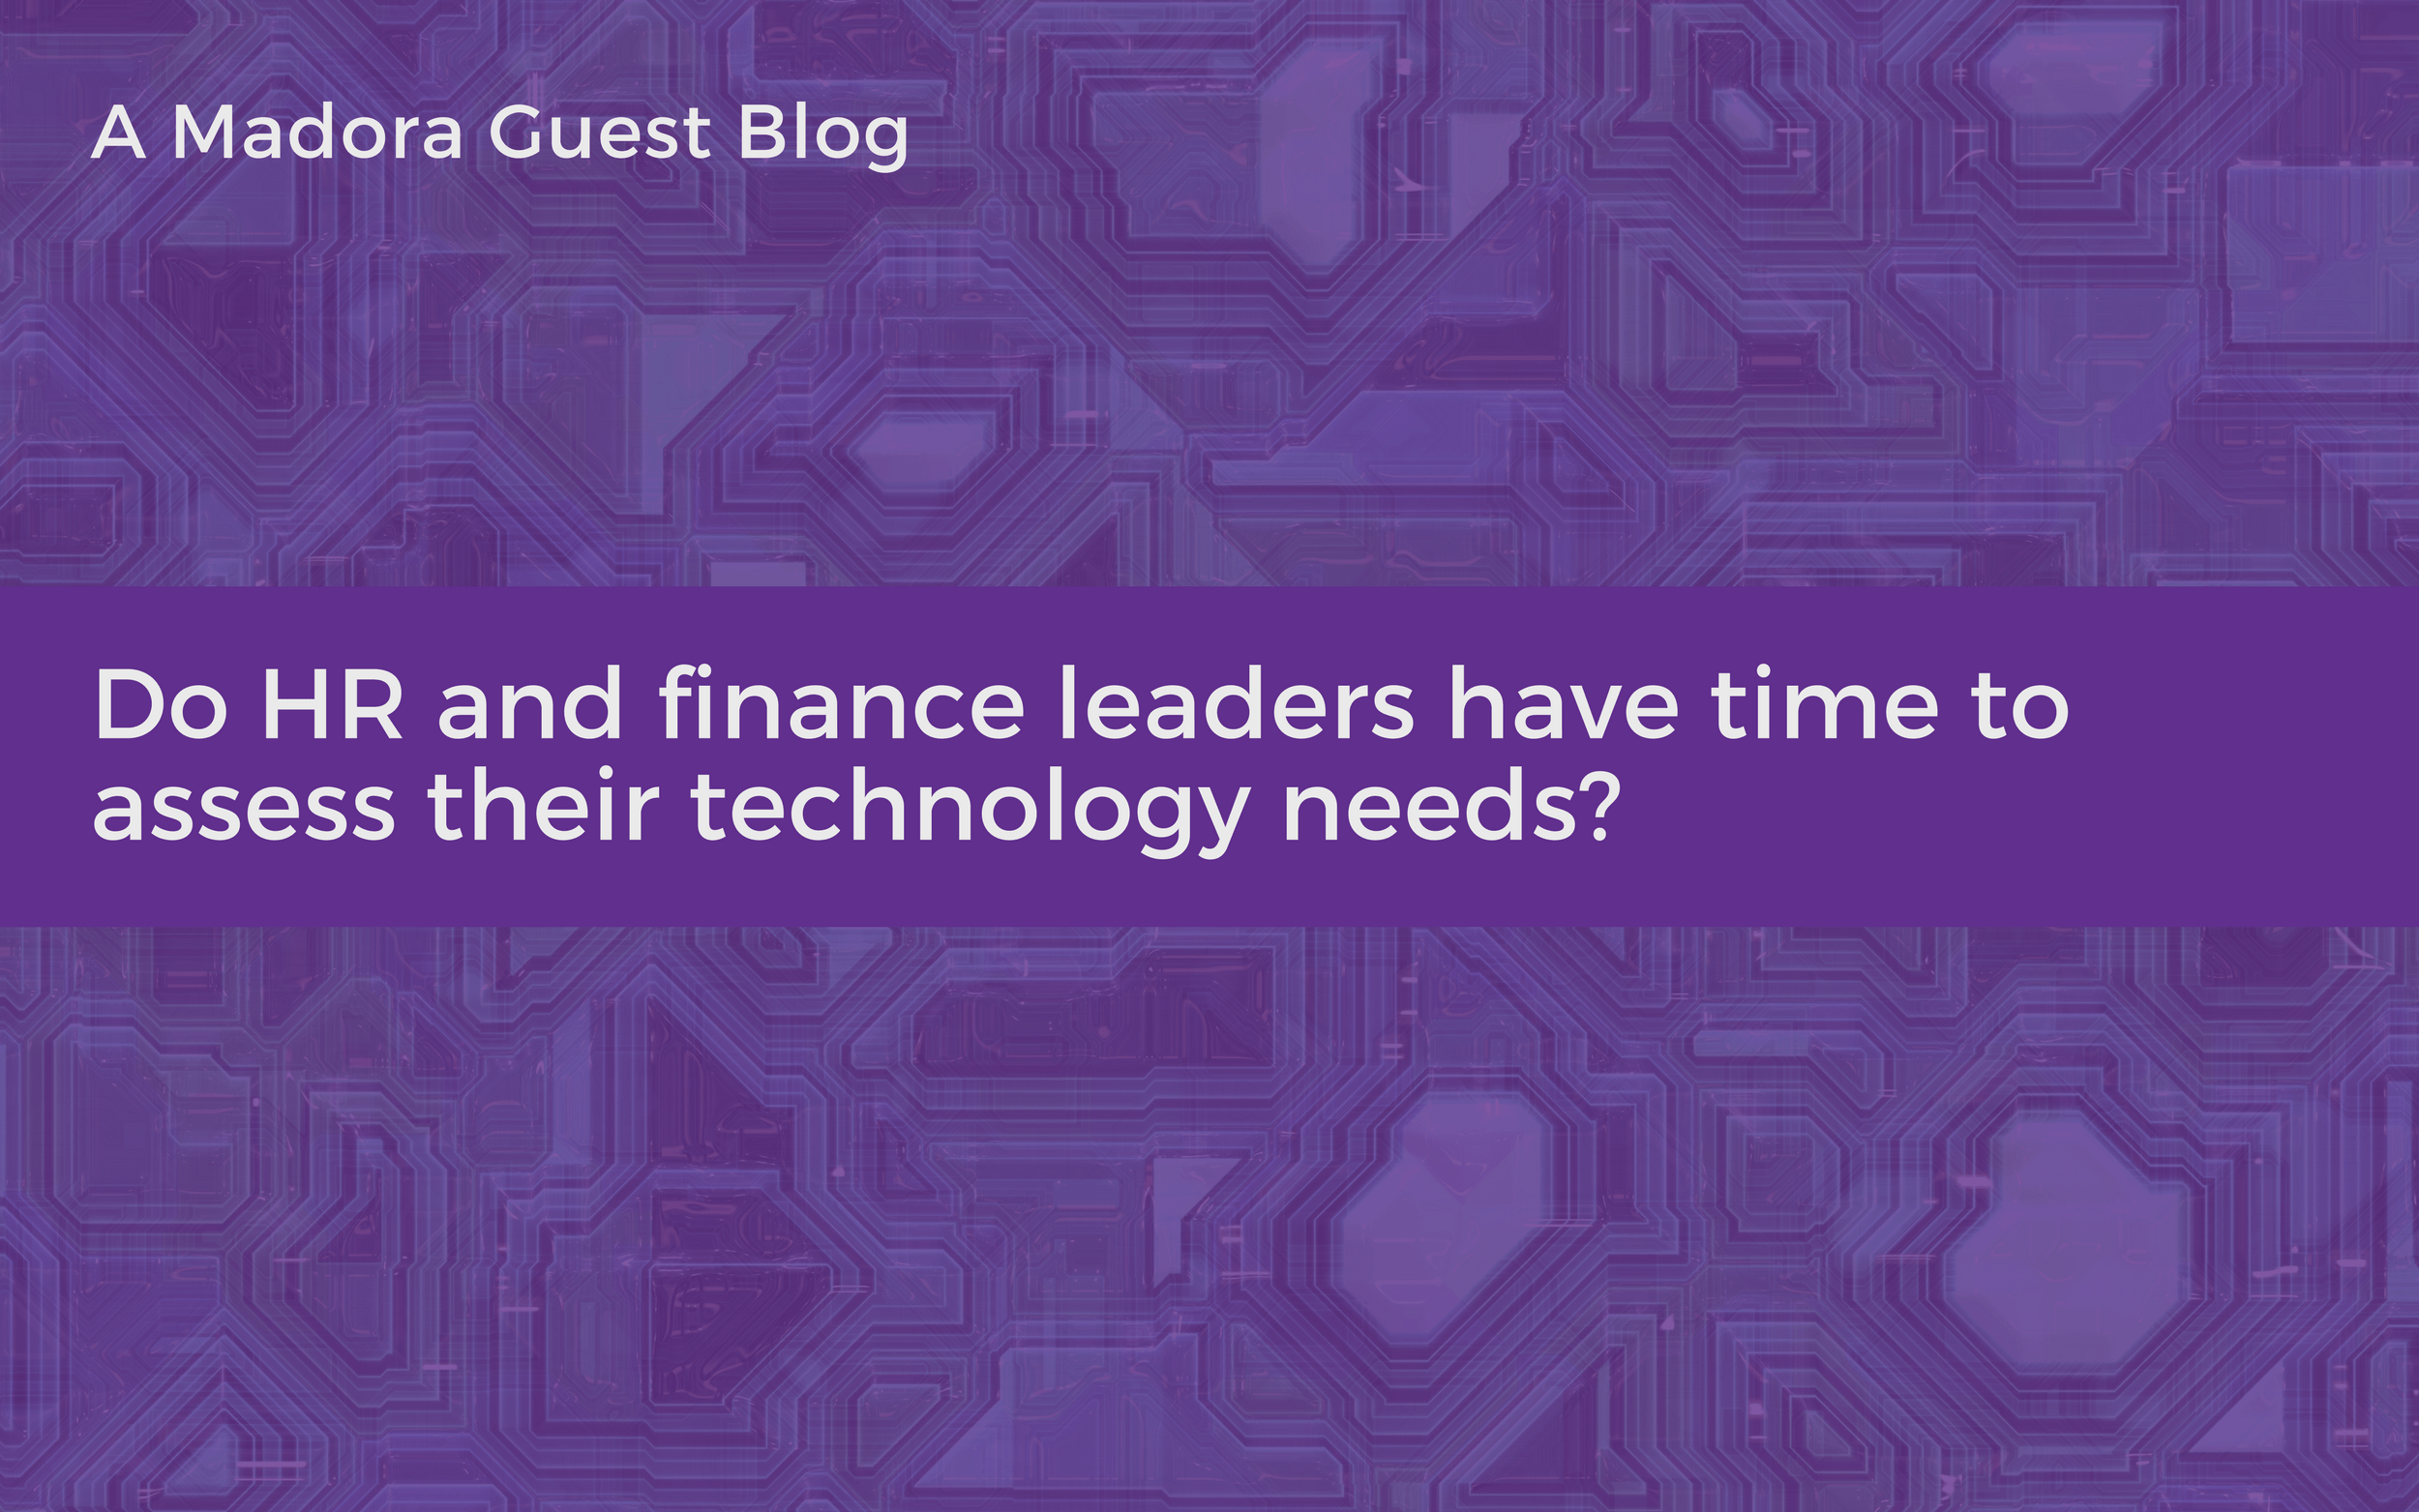 Do HR and finance leaders have time to assess their technology needs